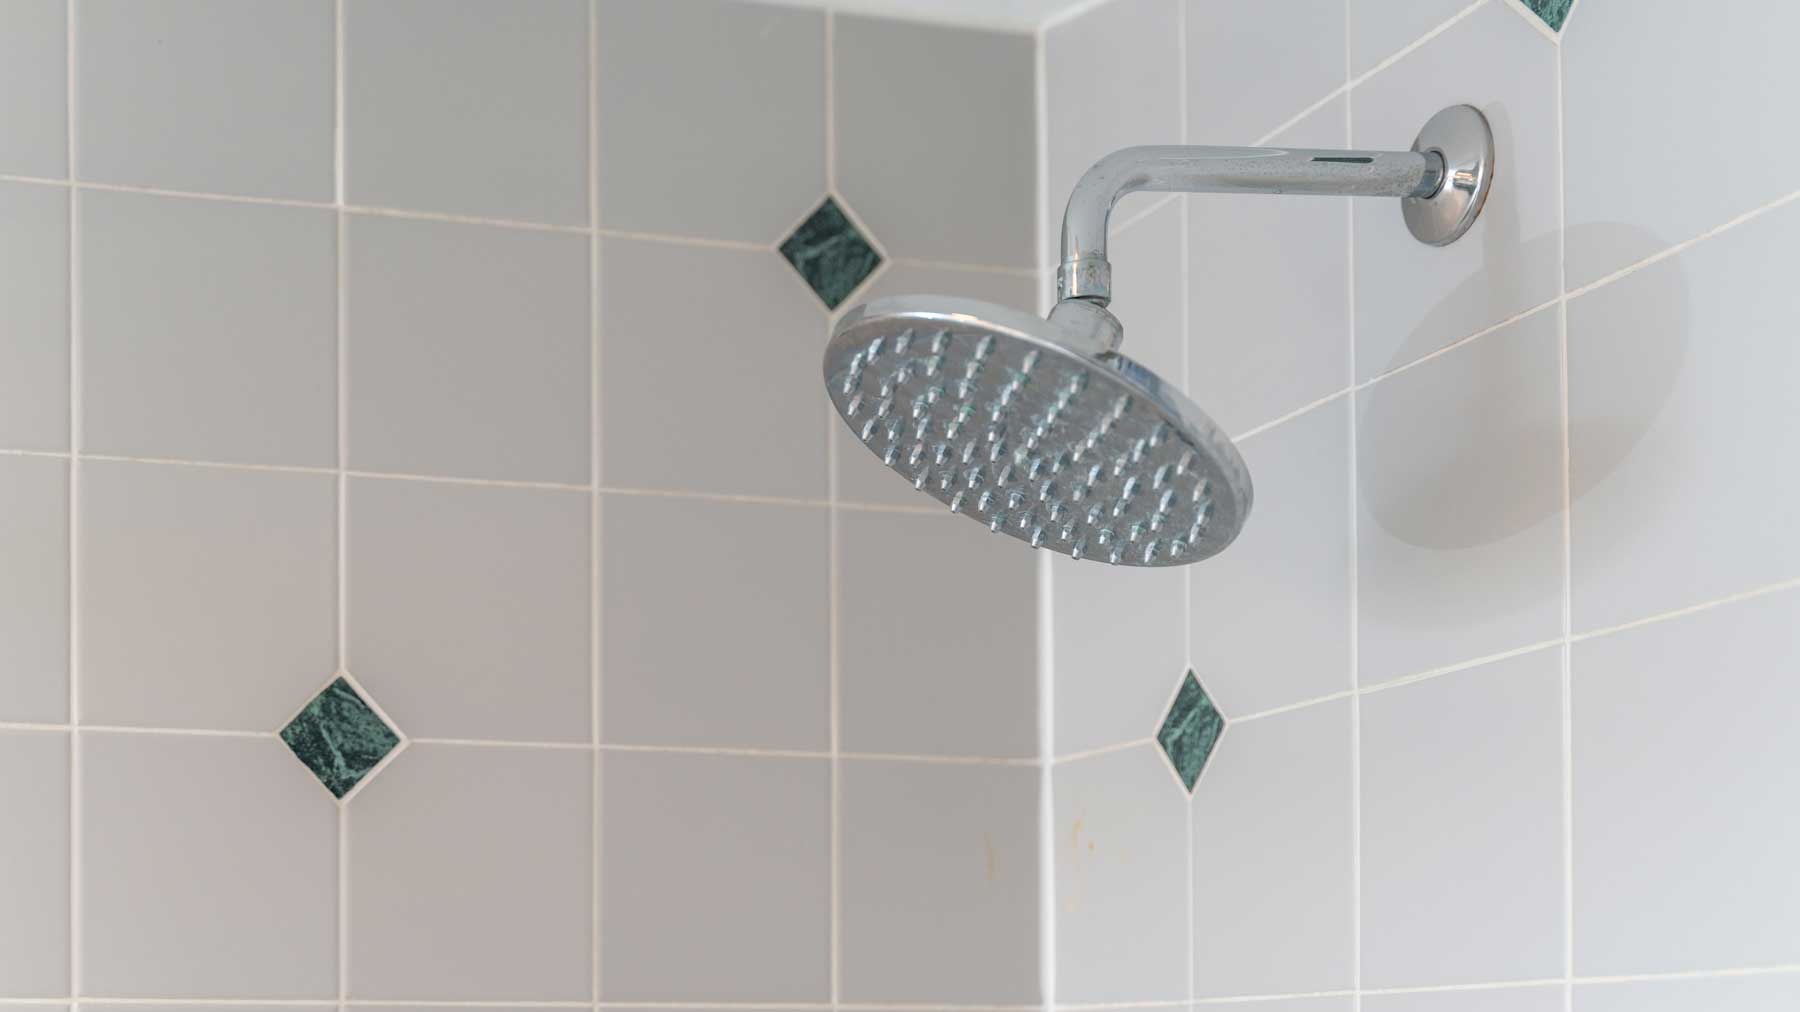 Riverfront retreat master bath shower head